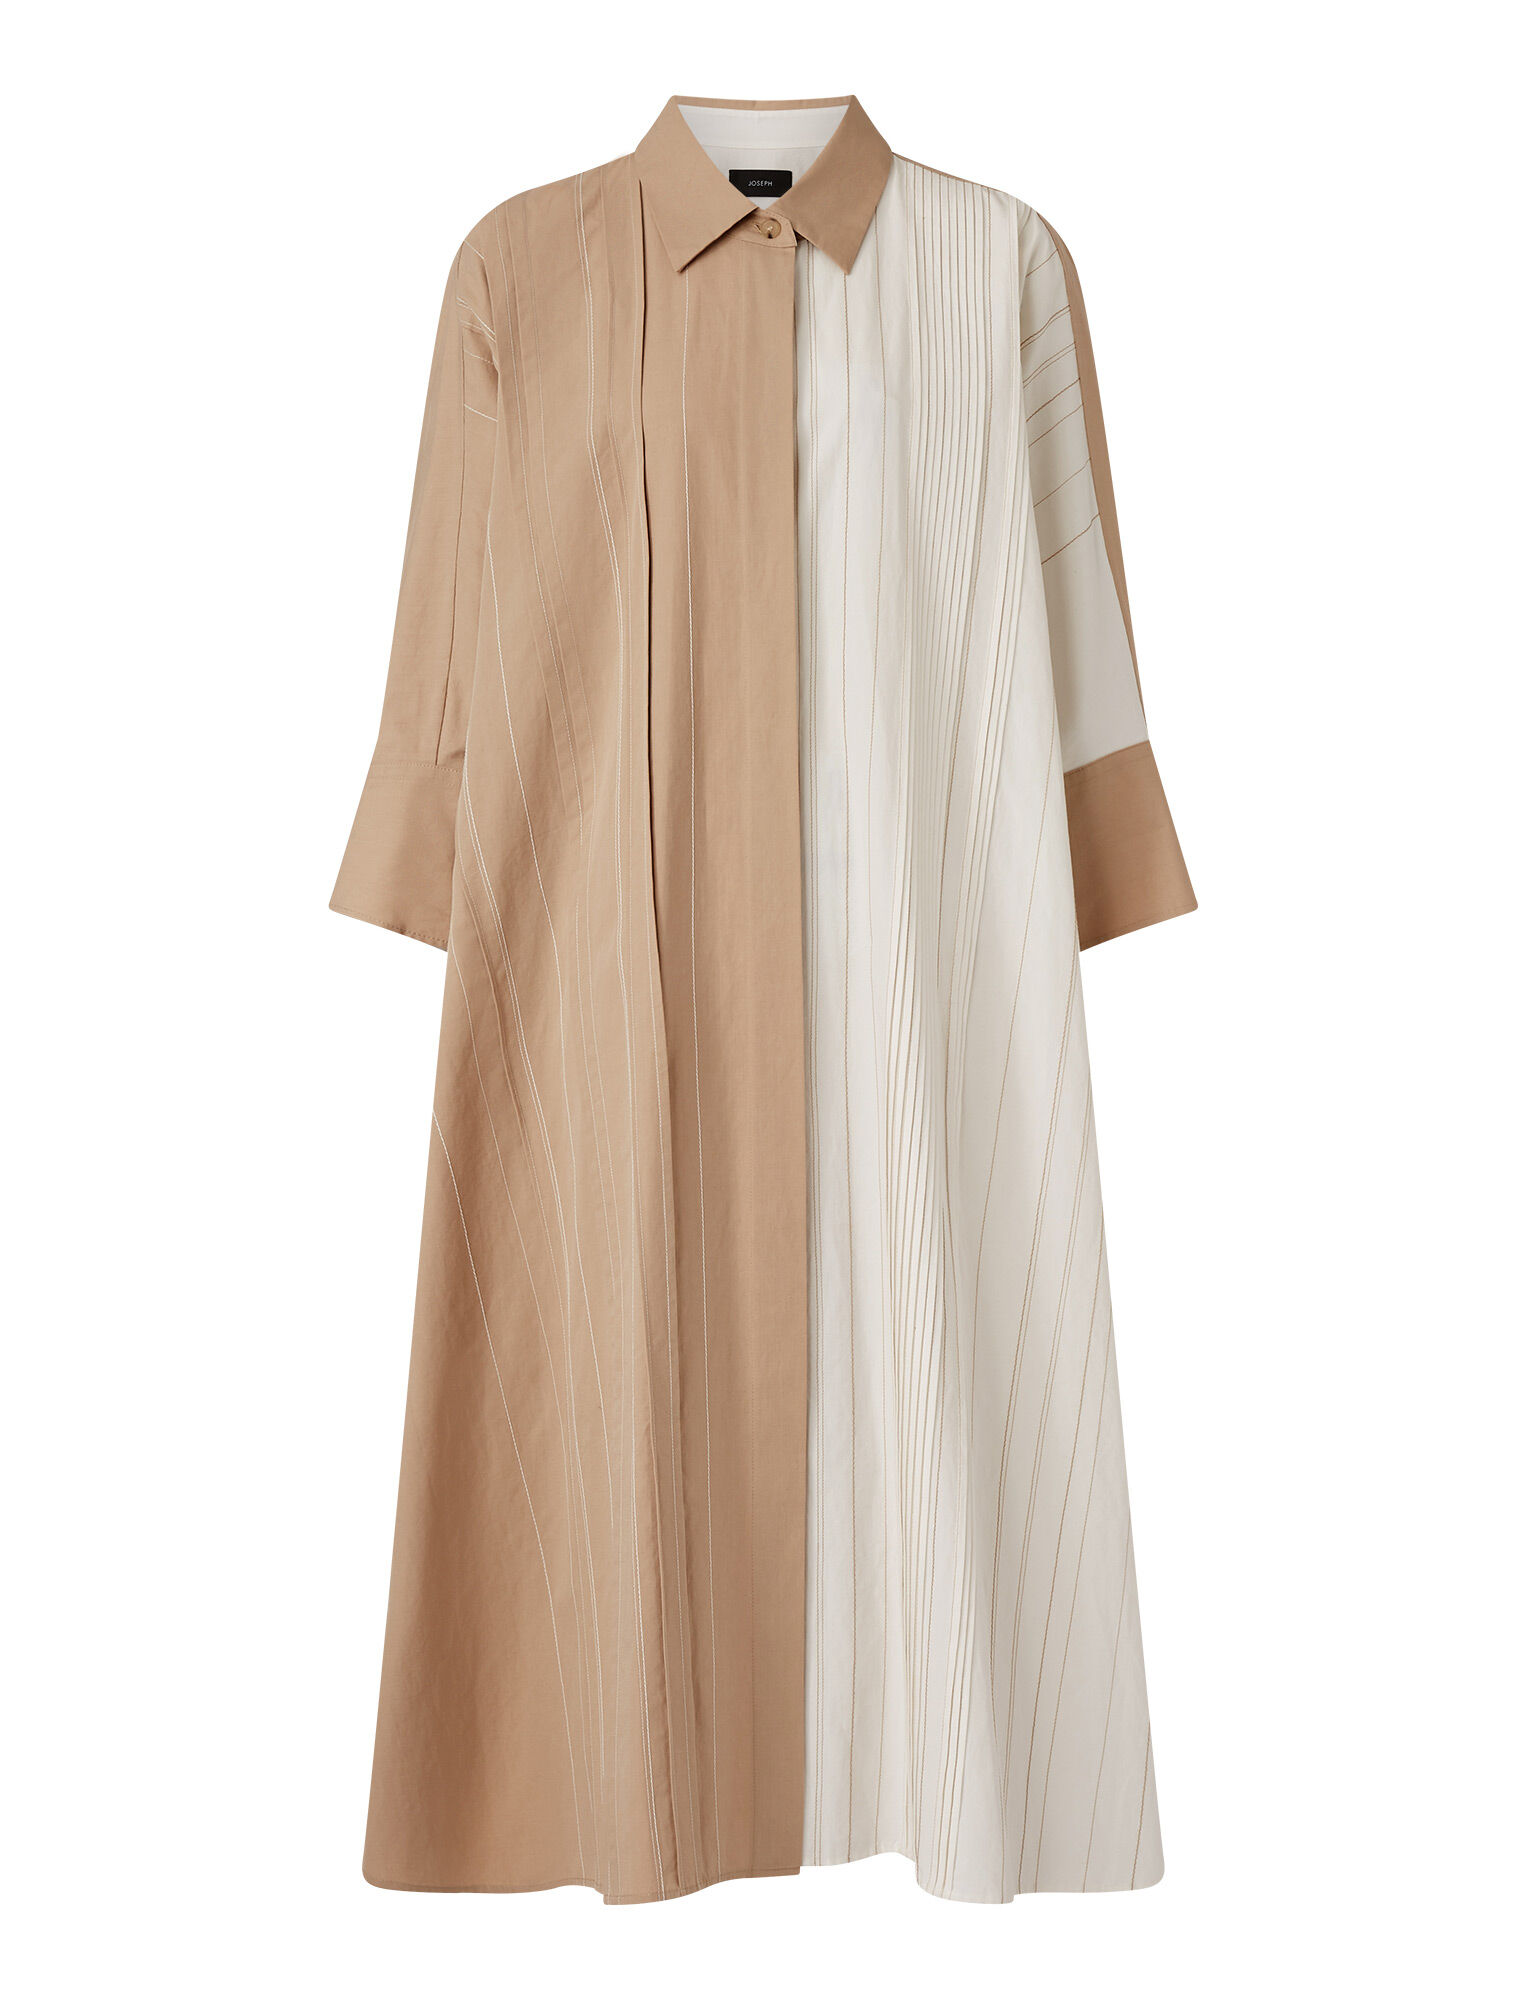 Joseph, Cotton Linen Dany Dress, in LINEN/OFF WHITE